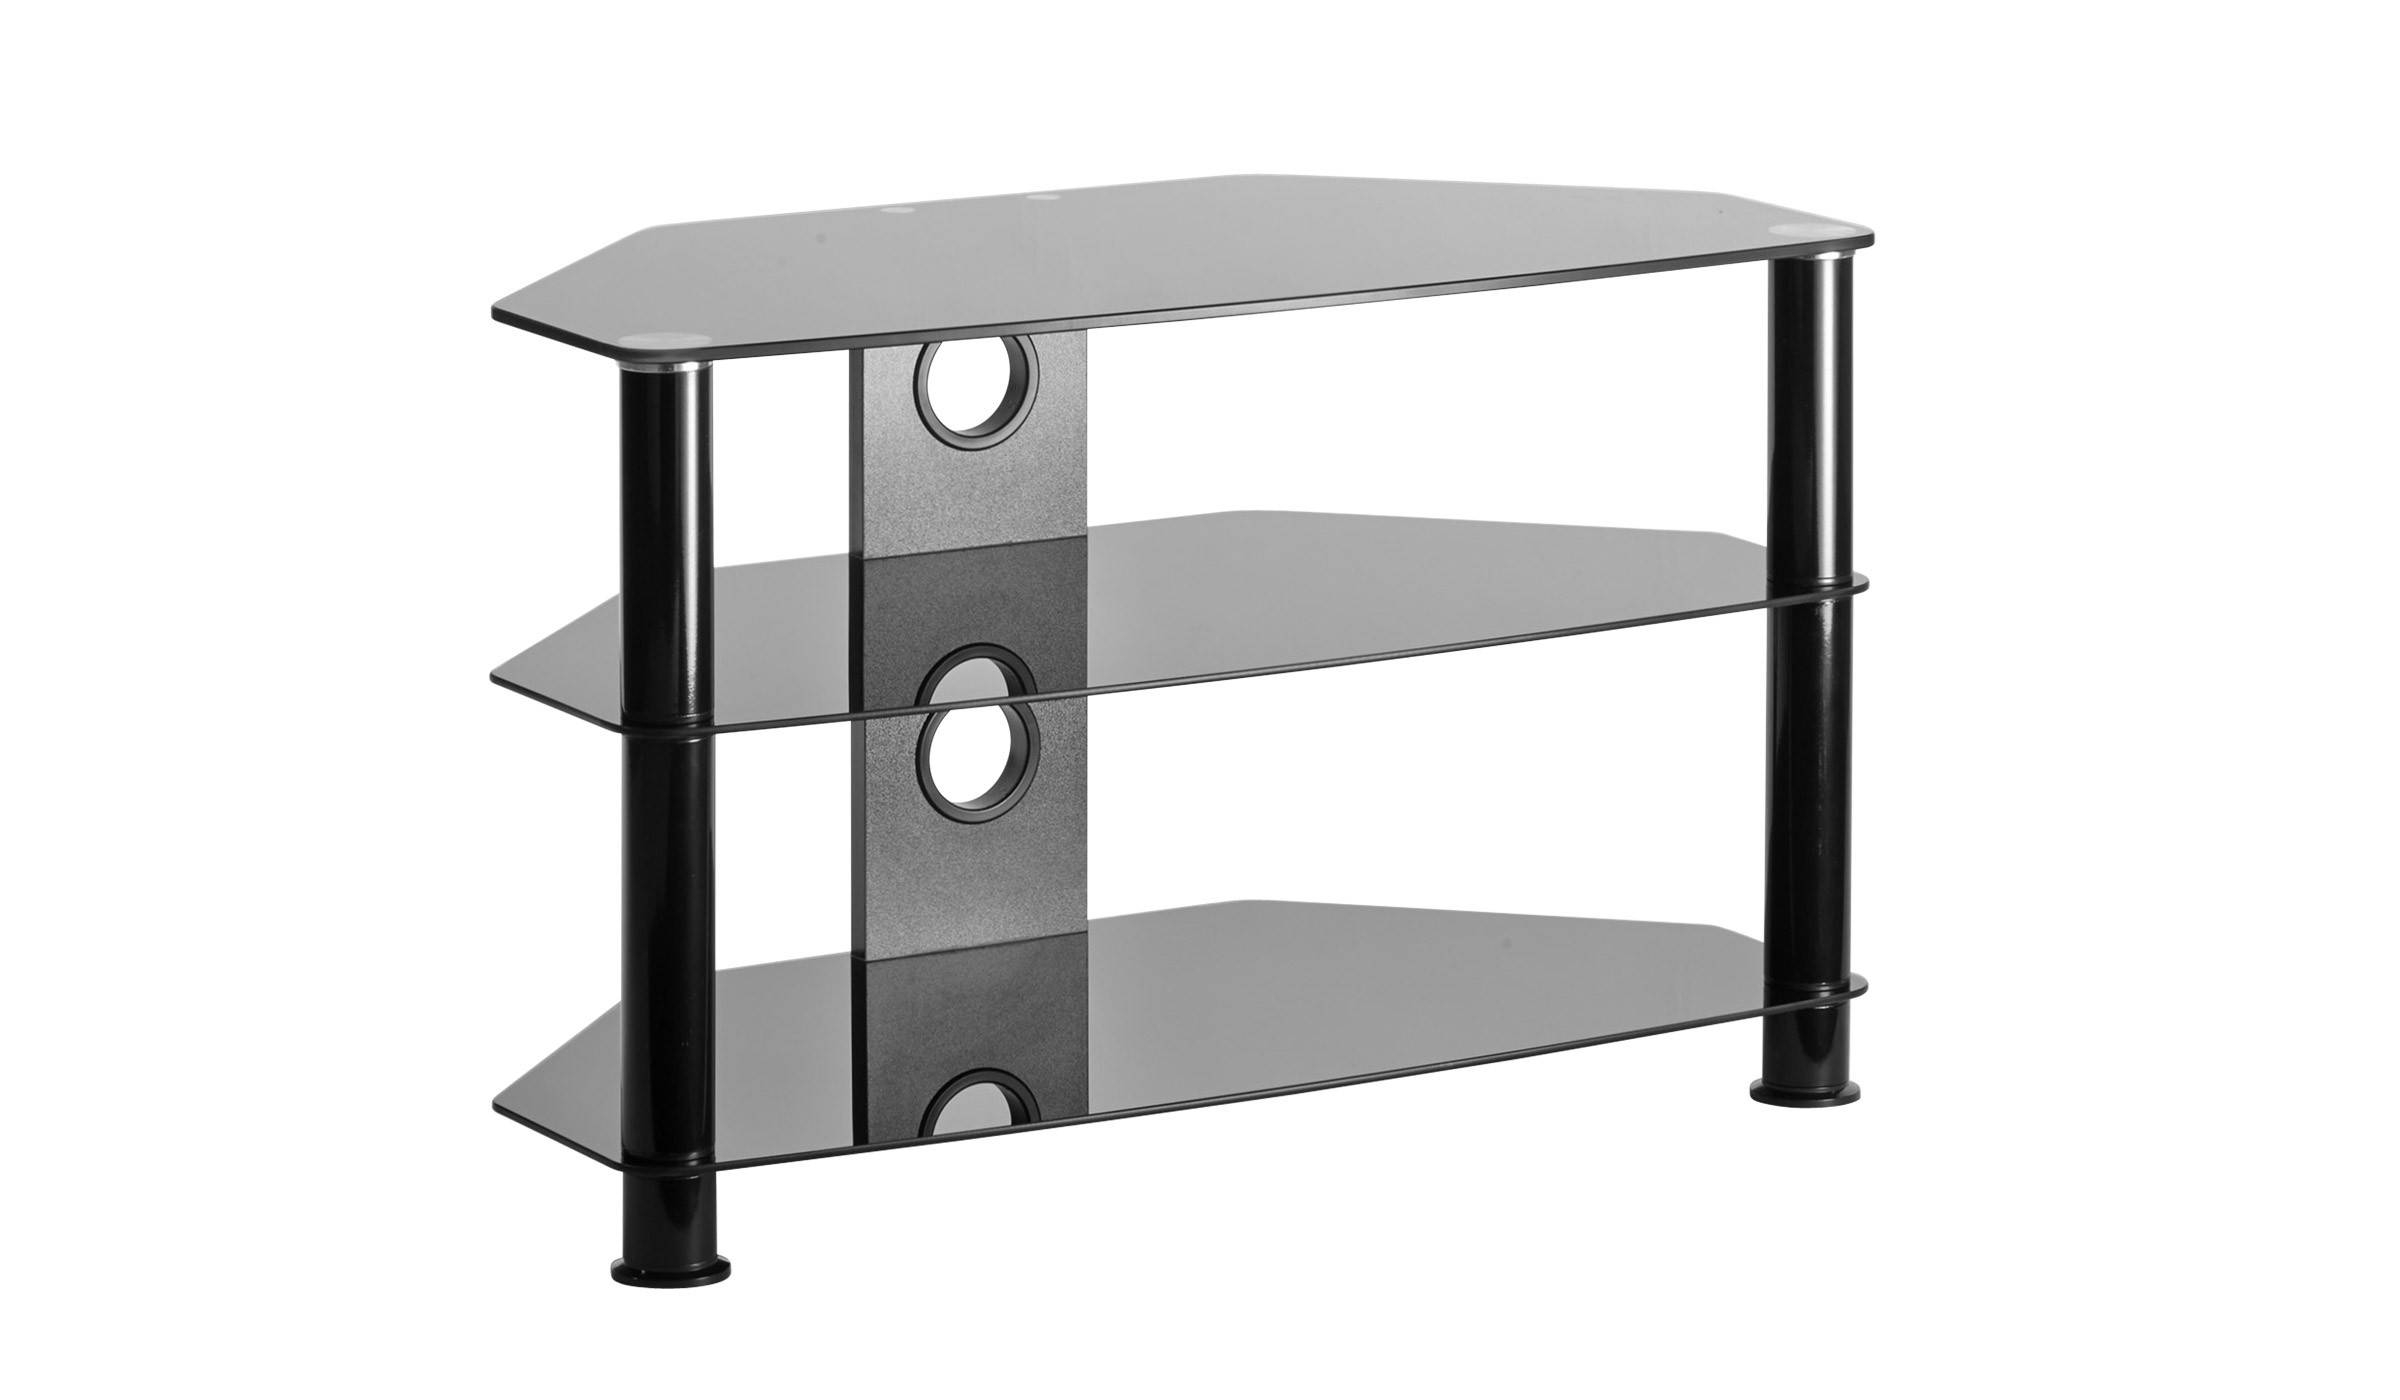 Glass Tv Stands & Tv Cabinets | Tv Wall Brackets & Mounts In Smoked Glass Tv Stands (View 12 of 15)